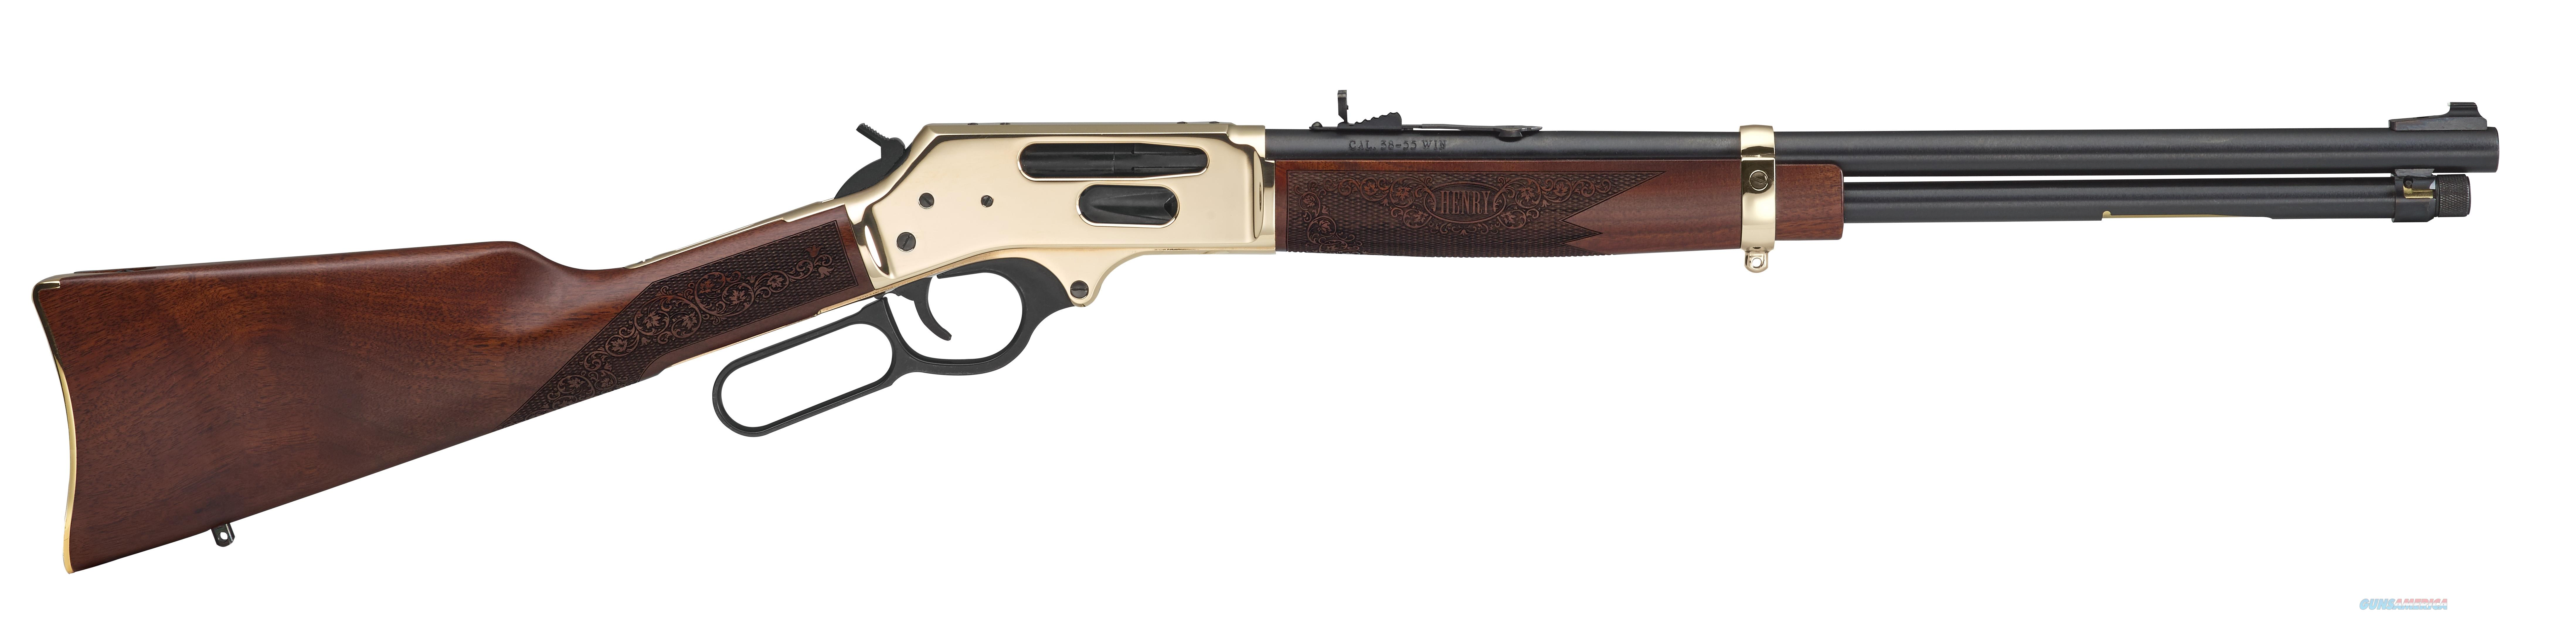 Henry Brass Lever Action Sidegate 38-55 Winchester Rifle  Guns > Rifles > Henry Rifle Company